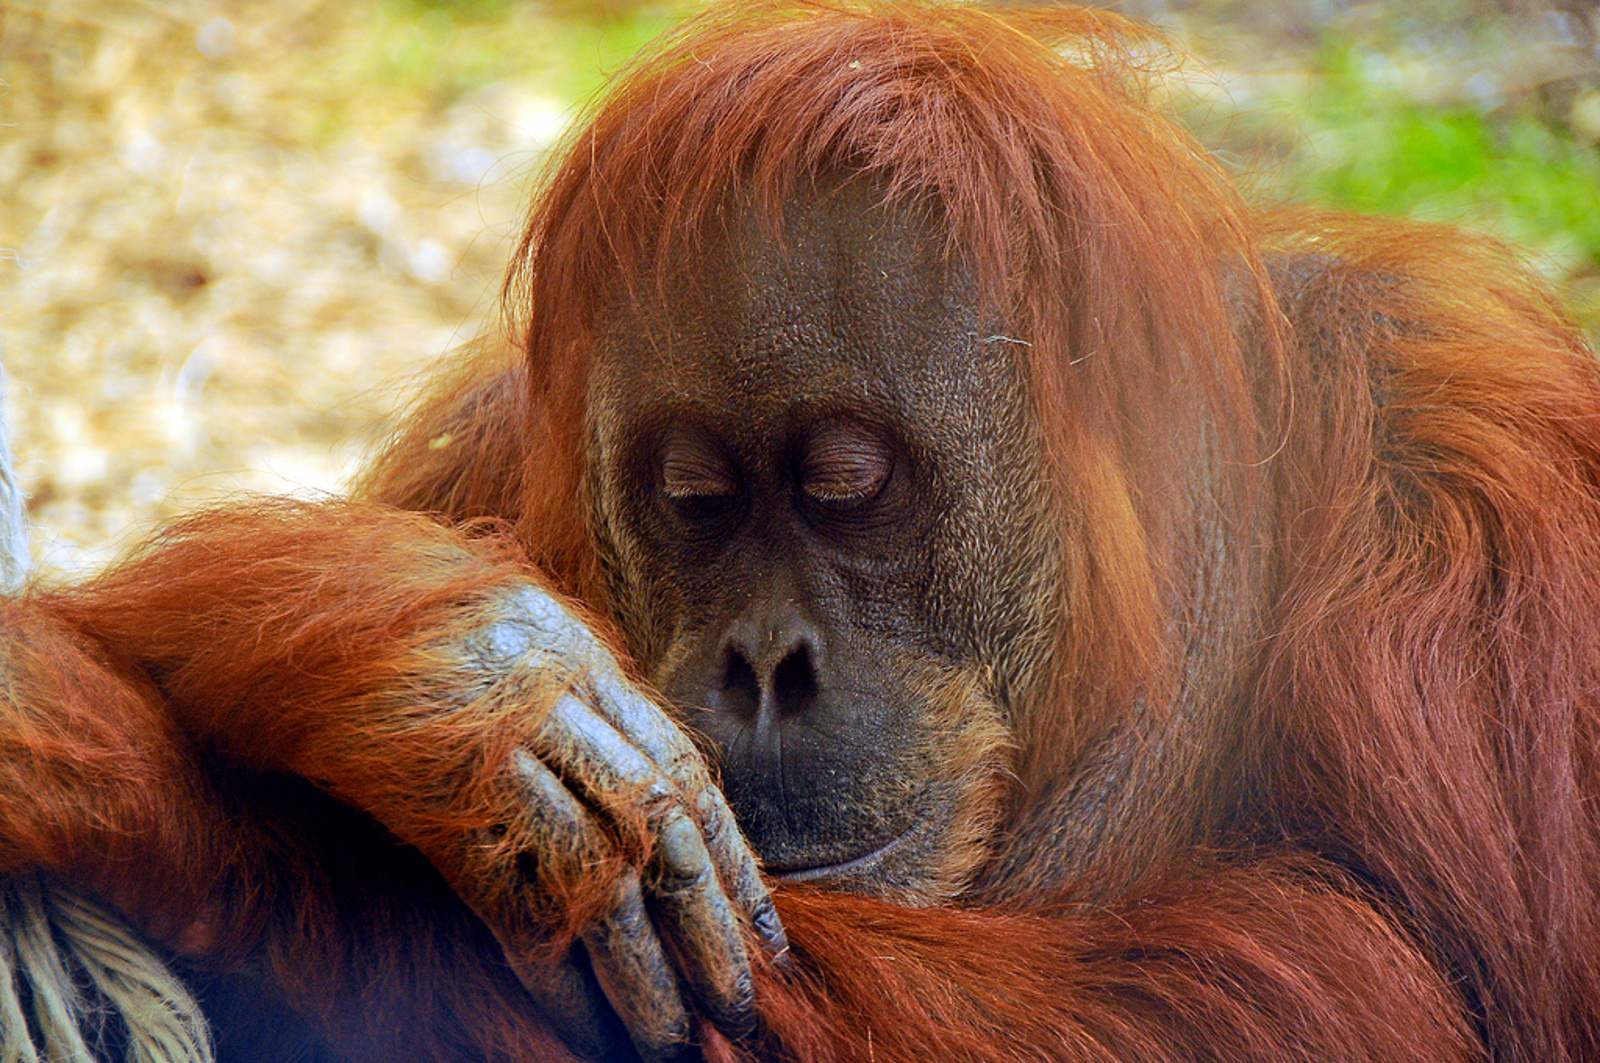 Has Palm Oil Got You Down? Don't Worry These Organizations Have Got Our Back